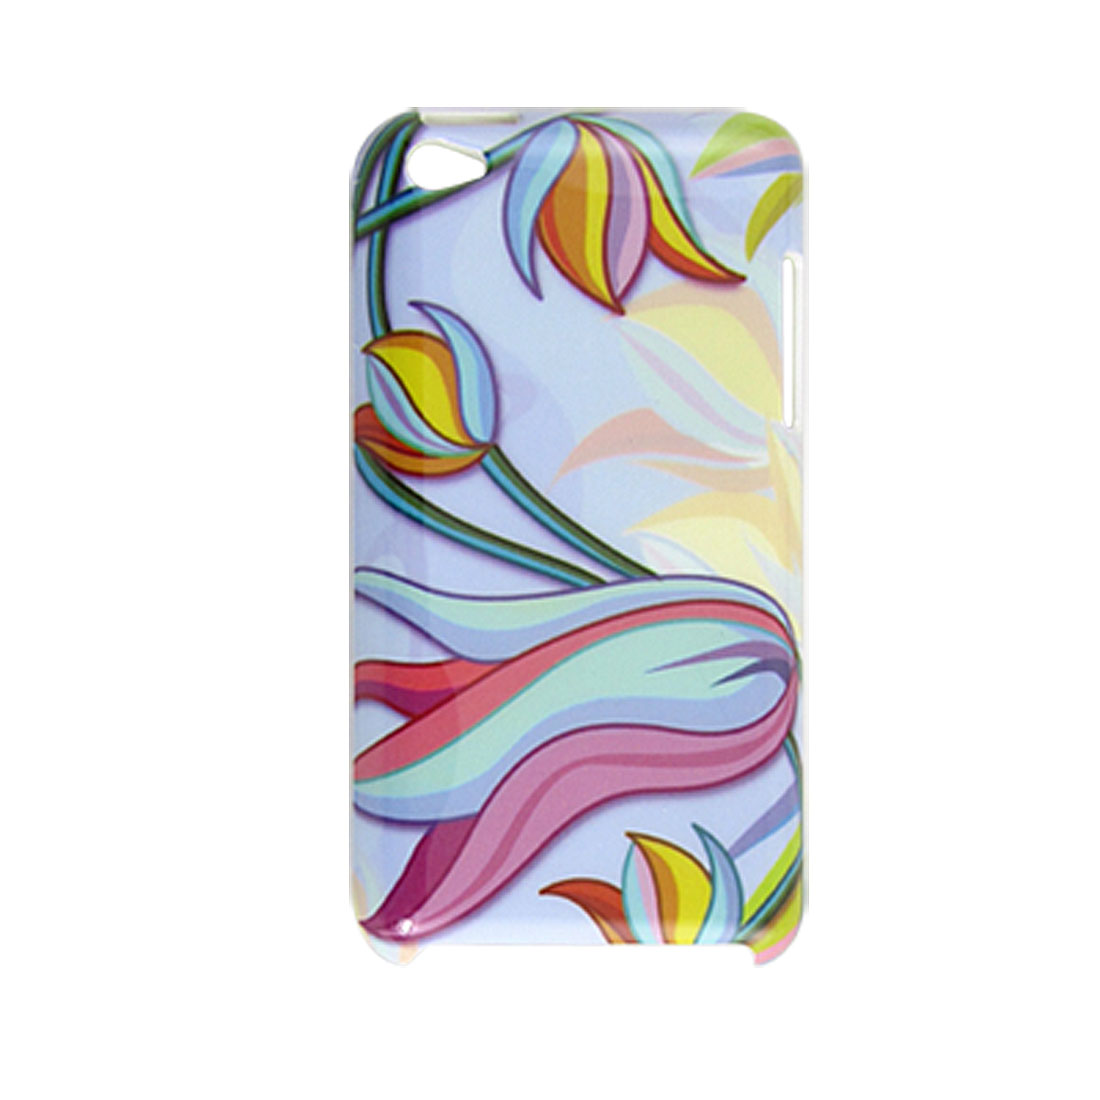 Colorful Floral Print Plastic IMD Back Shell for iPod Touch 4G